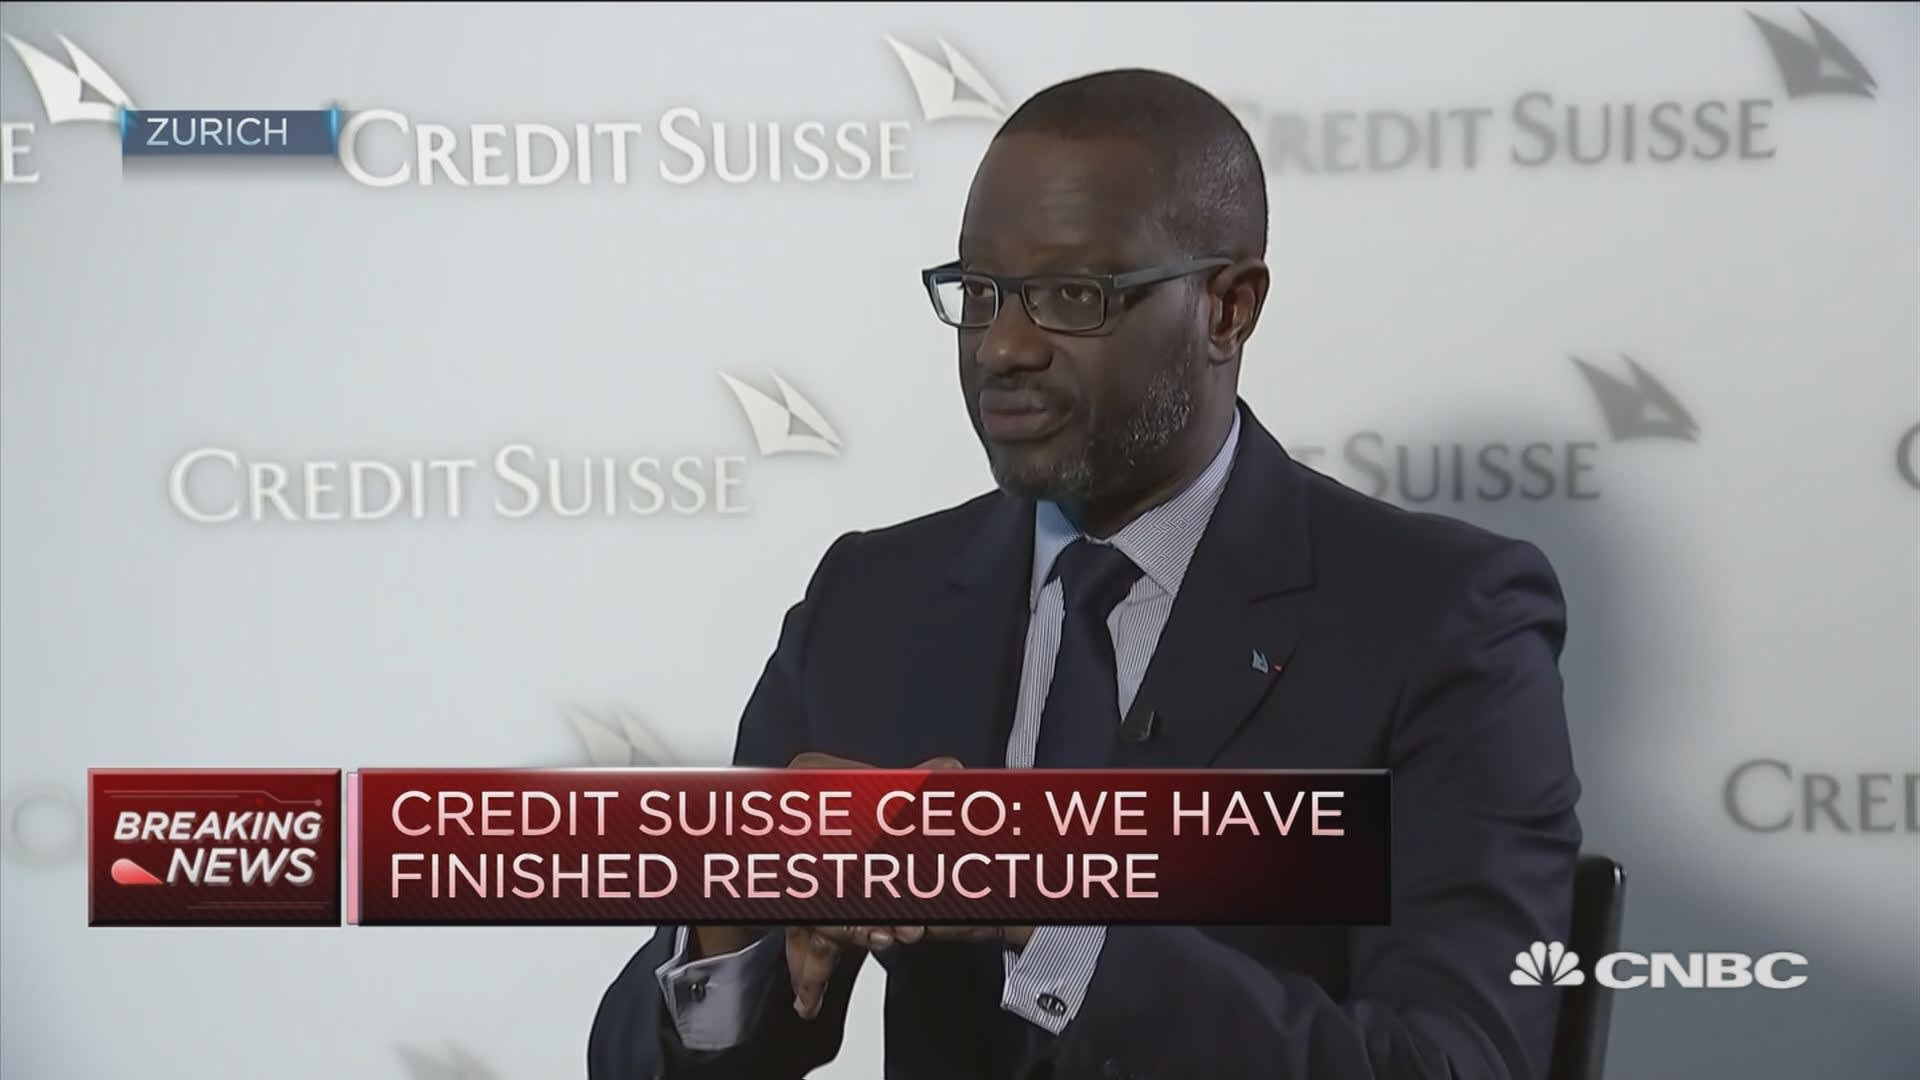 Credit Suisse posts profit beat following three-year restructuring plan